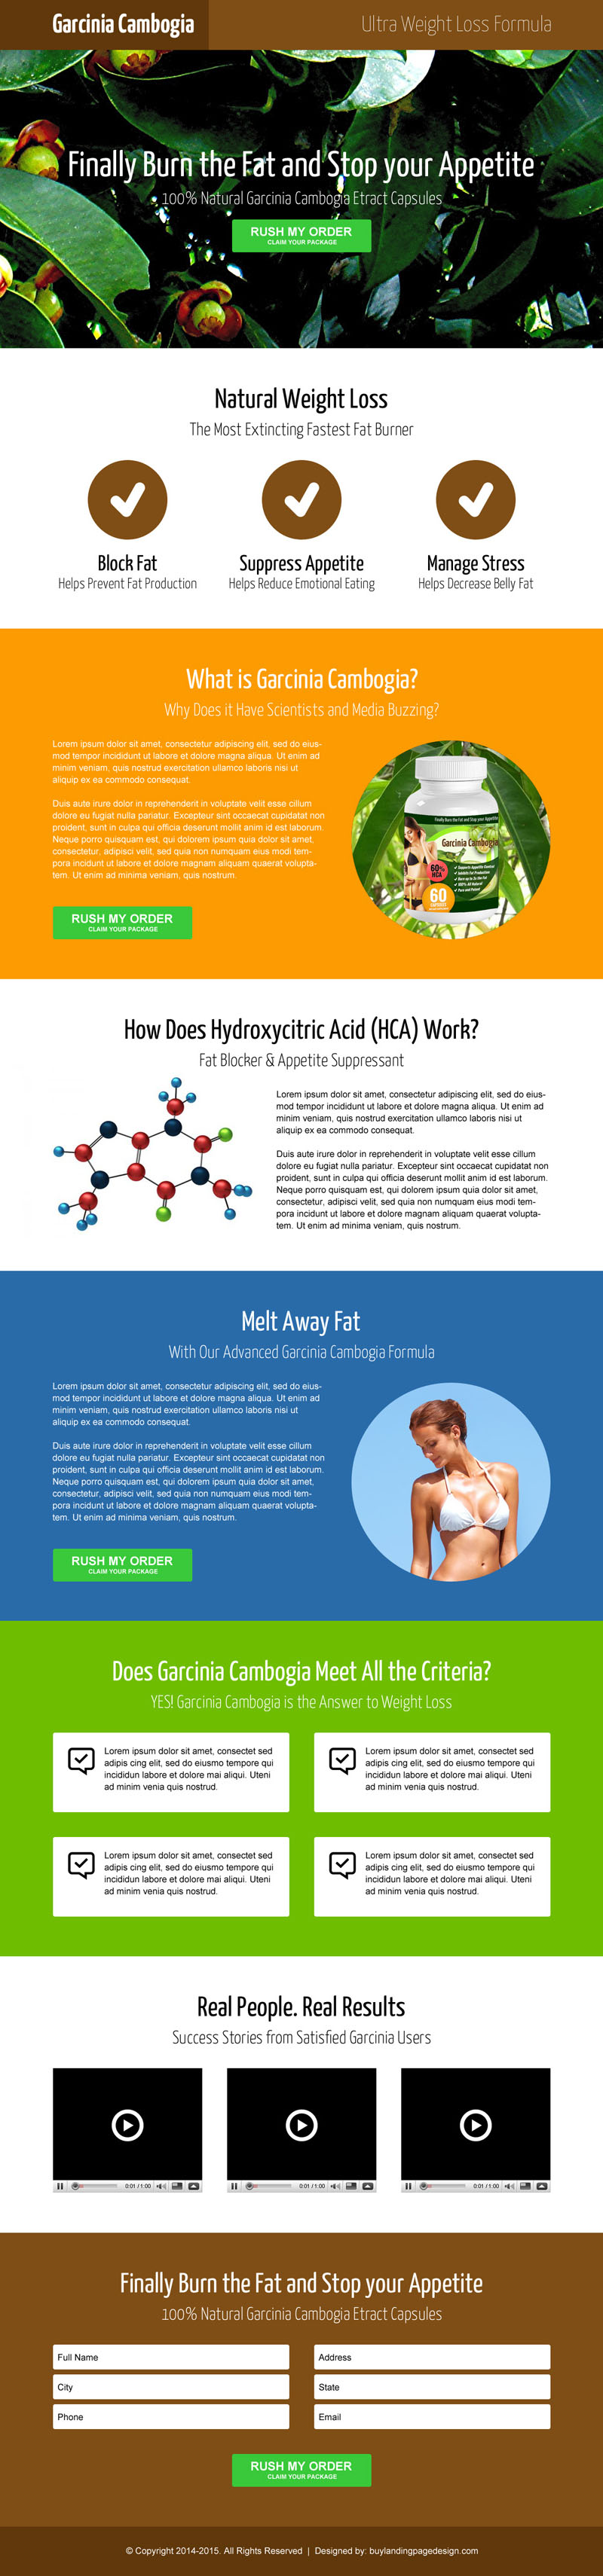 effective-garcinia-cambogia-lead-capture-and-product-selling-responsive-landing-page-design-004